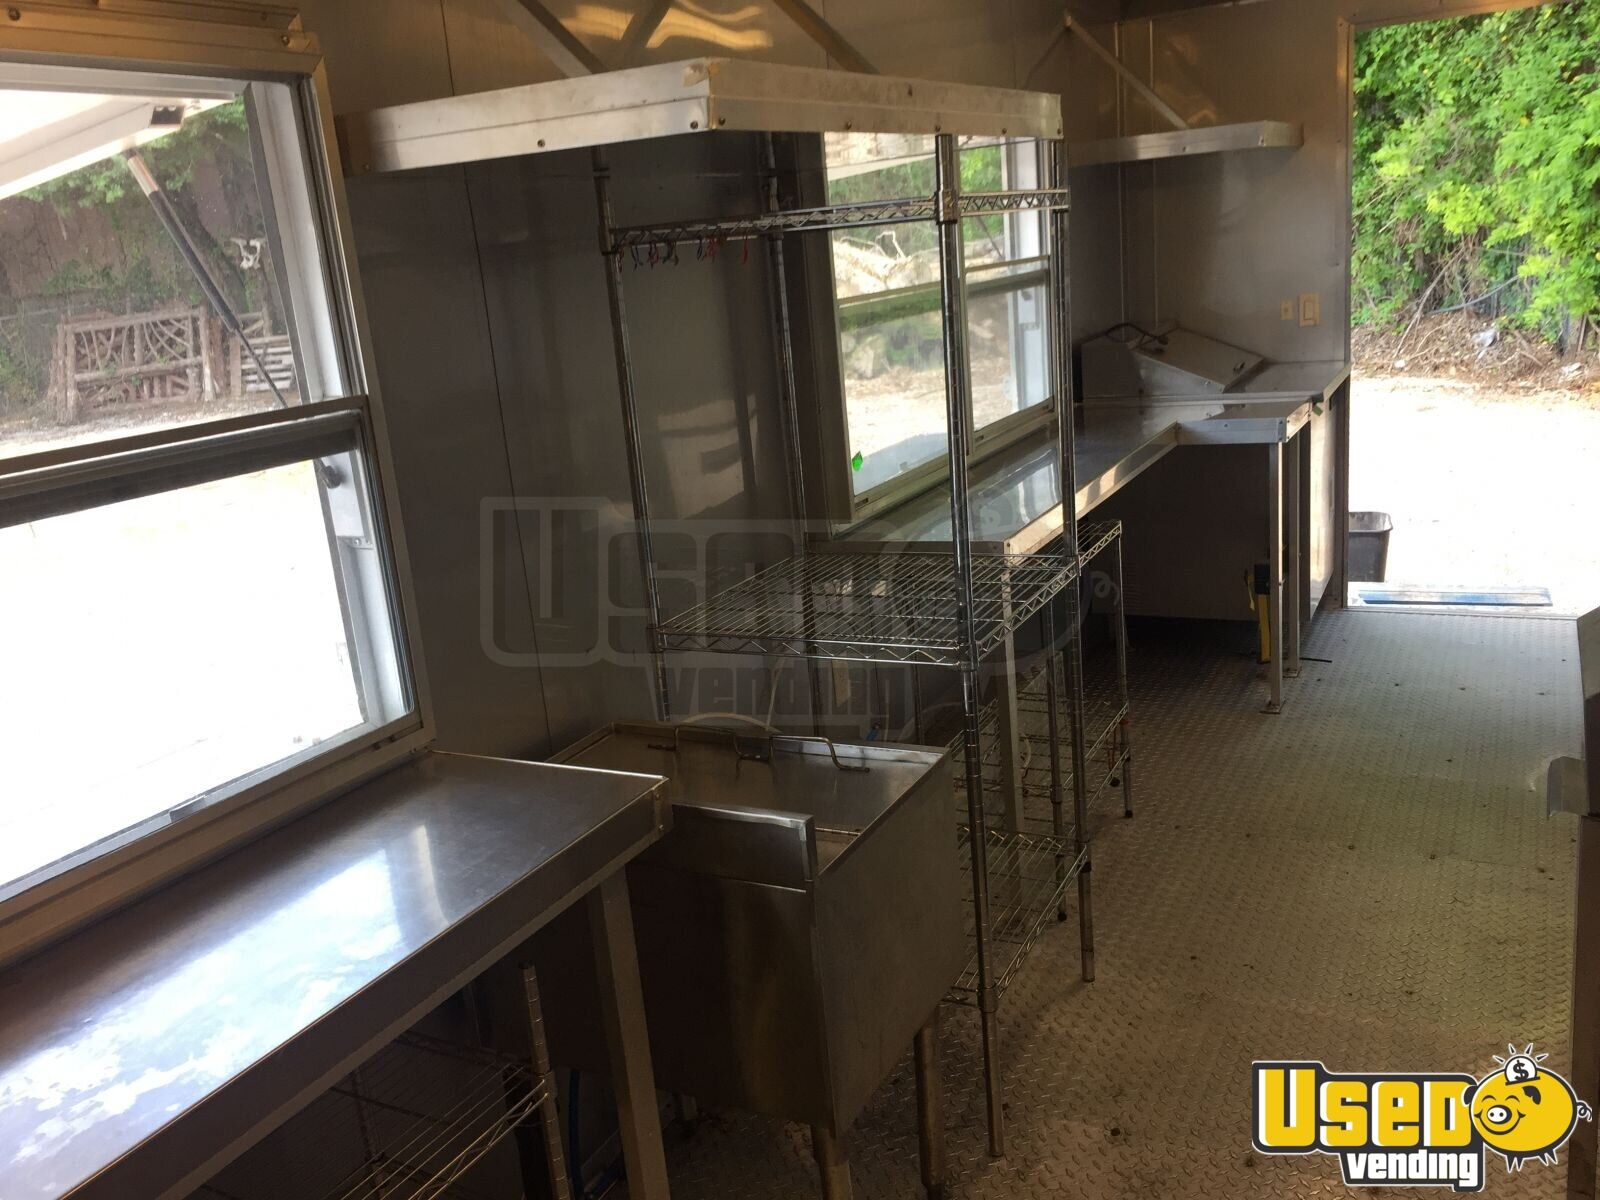 2017 Food Concession Trailer Kitchen Food Trailer Exterior Customer Counter Oklahoma for Sale - 9